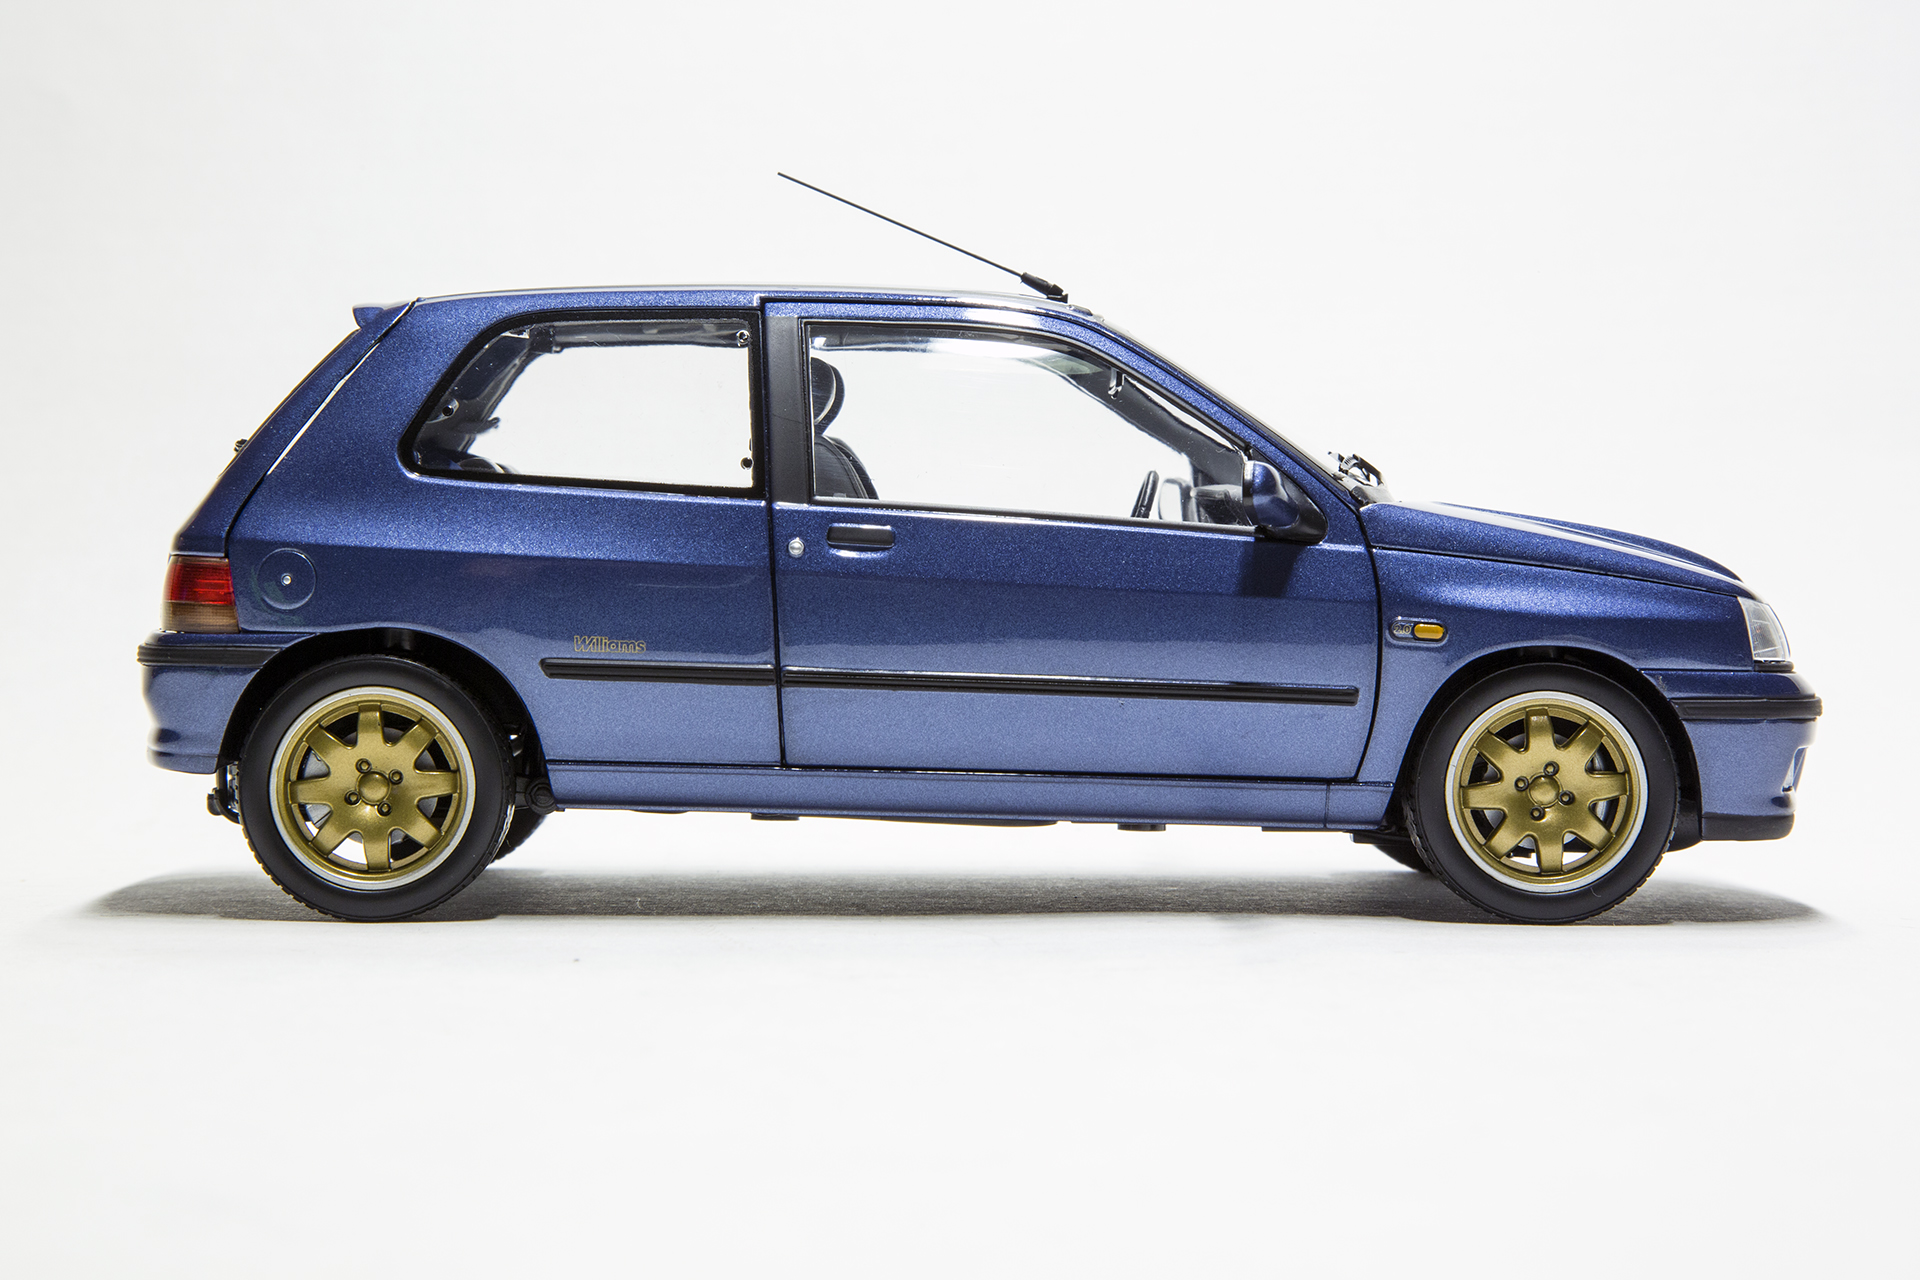 1 18 scale diecast model cars renault clio williams blue norev 185230. Black Bedroom Furniture Sets. Home Design Ideas